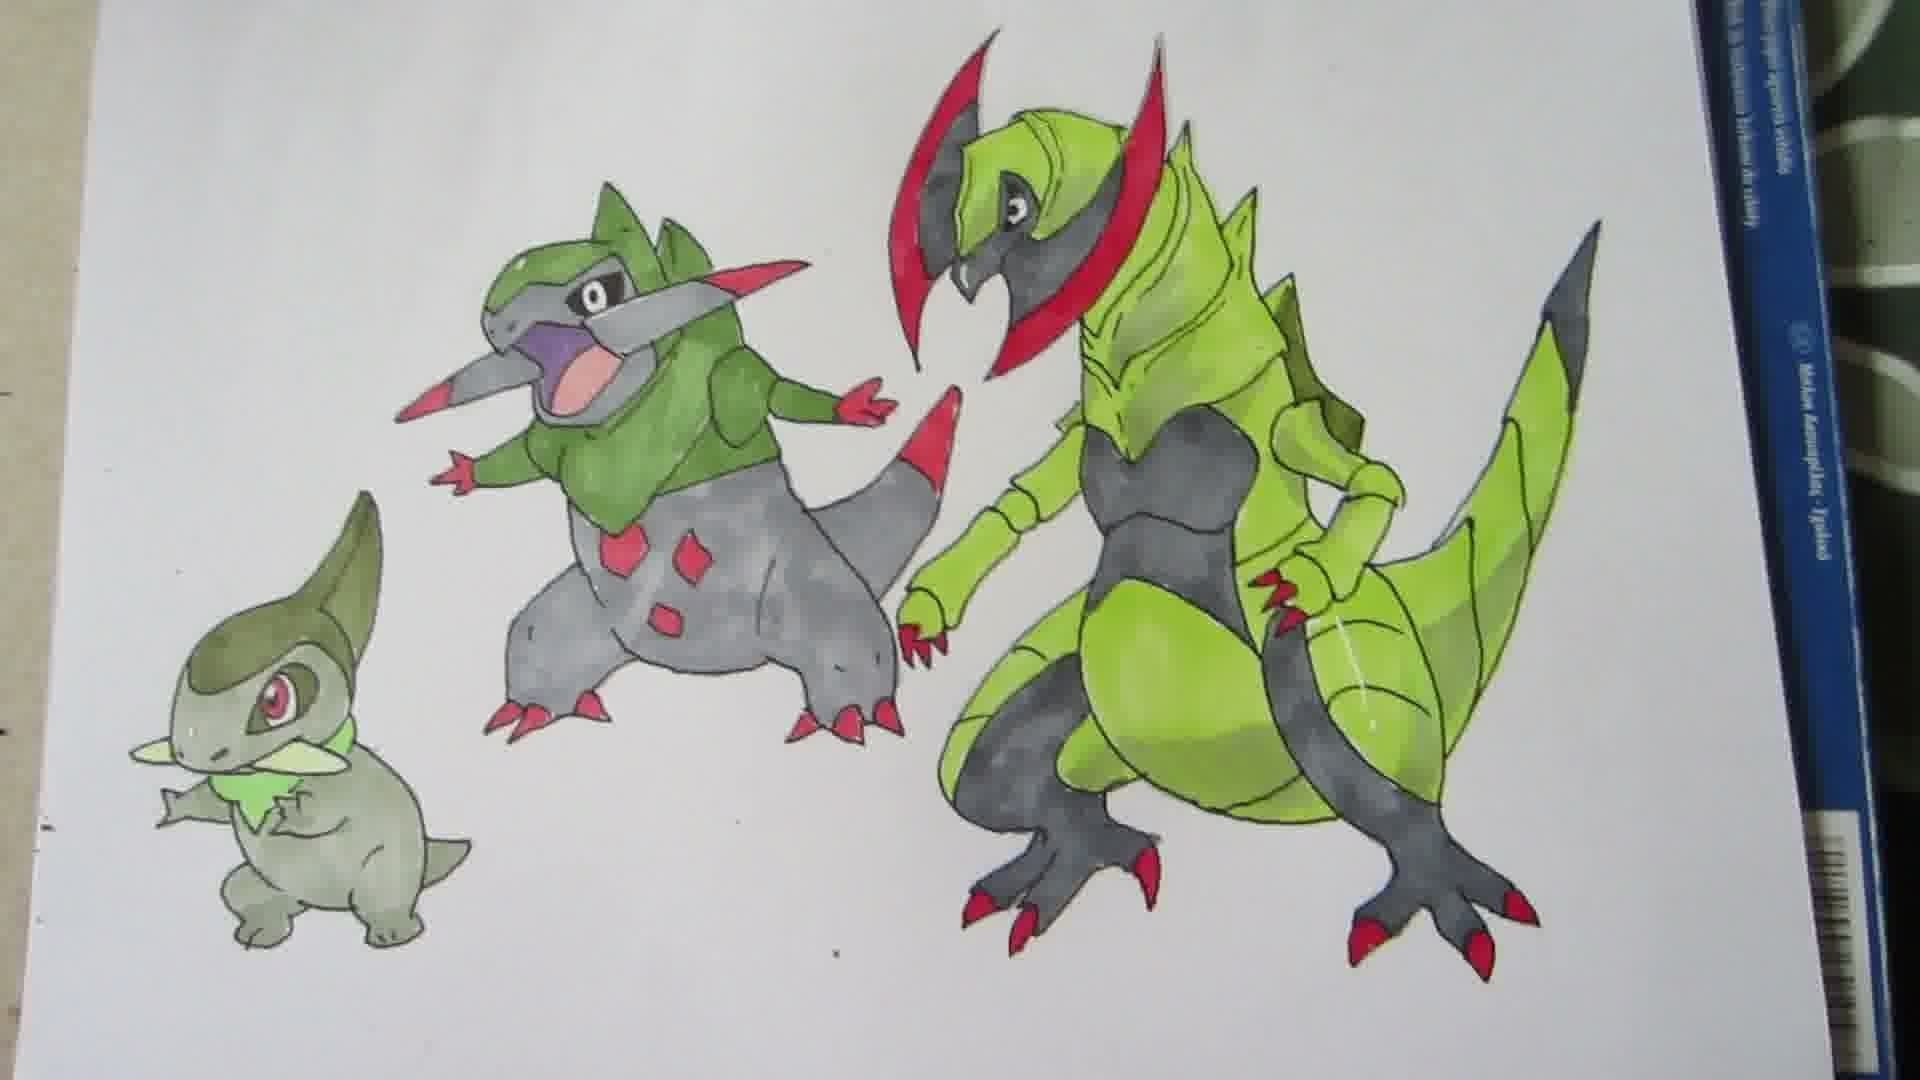 Res: 1920x1080, How to draw Pokemon: No.610 Axew, No.611 Fraxure, No.612 Haxorus - YouTube